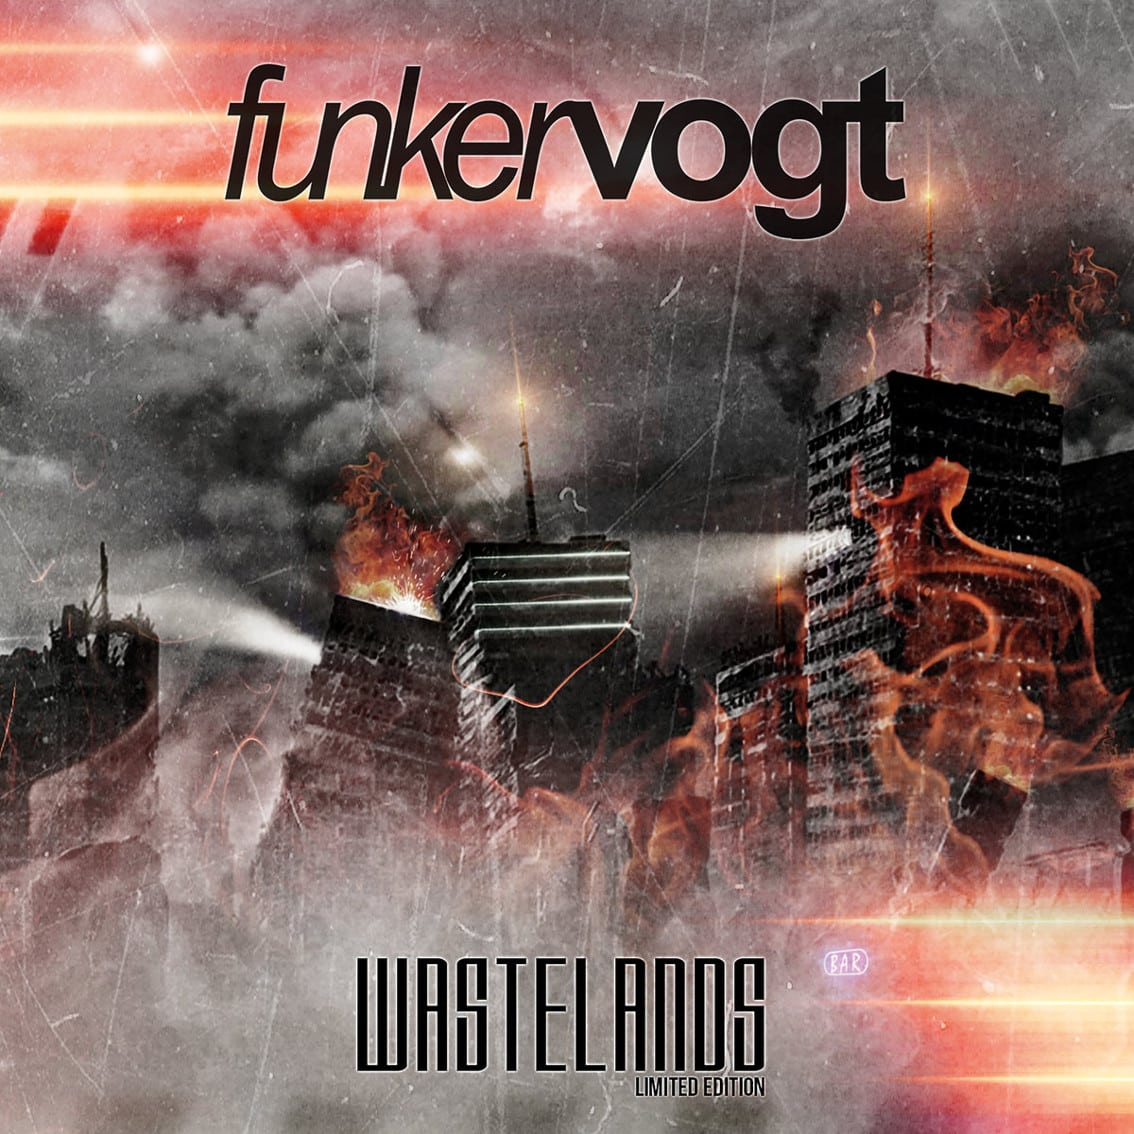 Funker Vogt also offers limited edition new'Wastelands' album with bonus tracks, new EP'Feel The Pain' out now